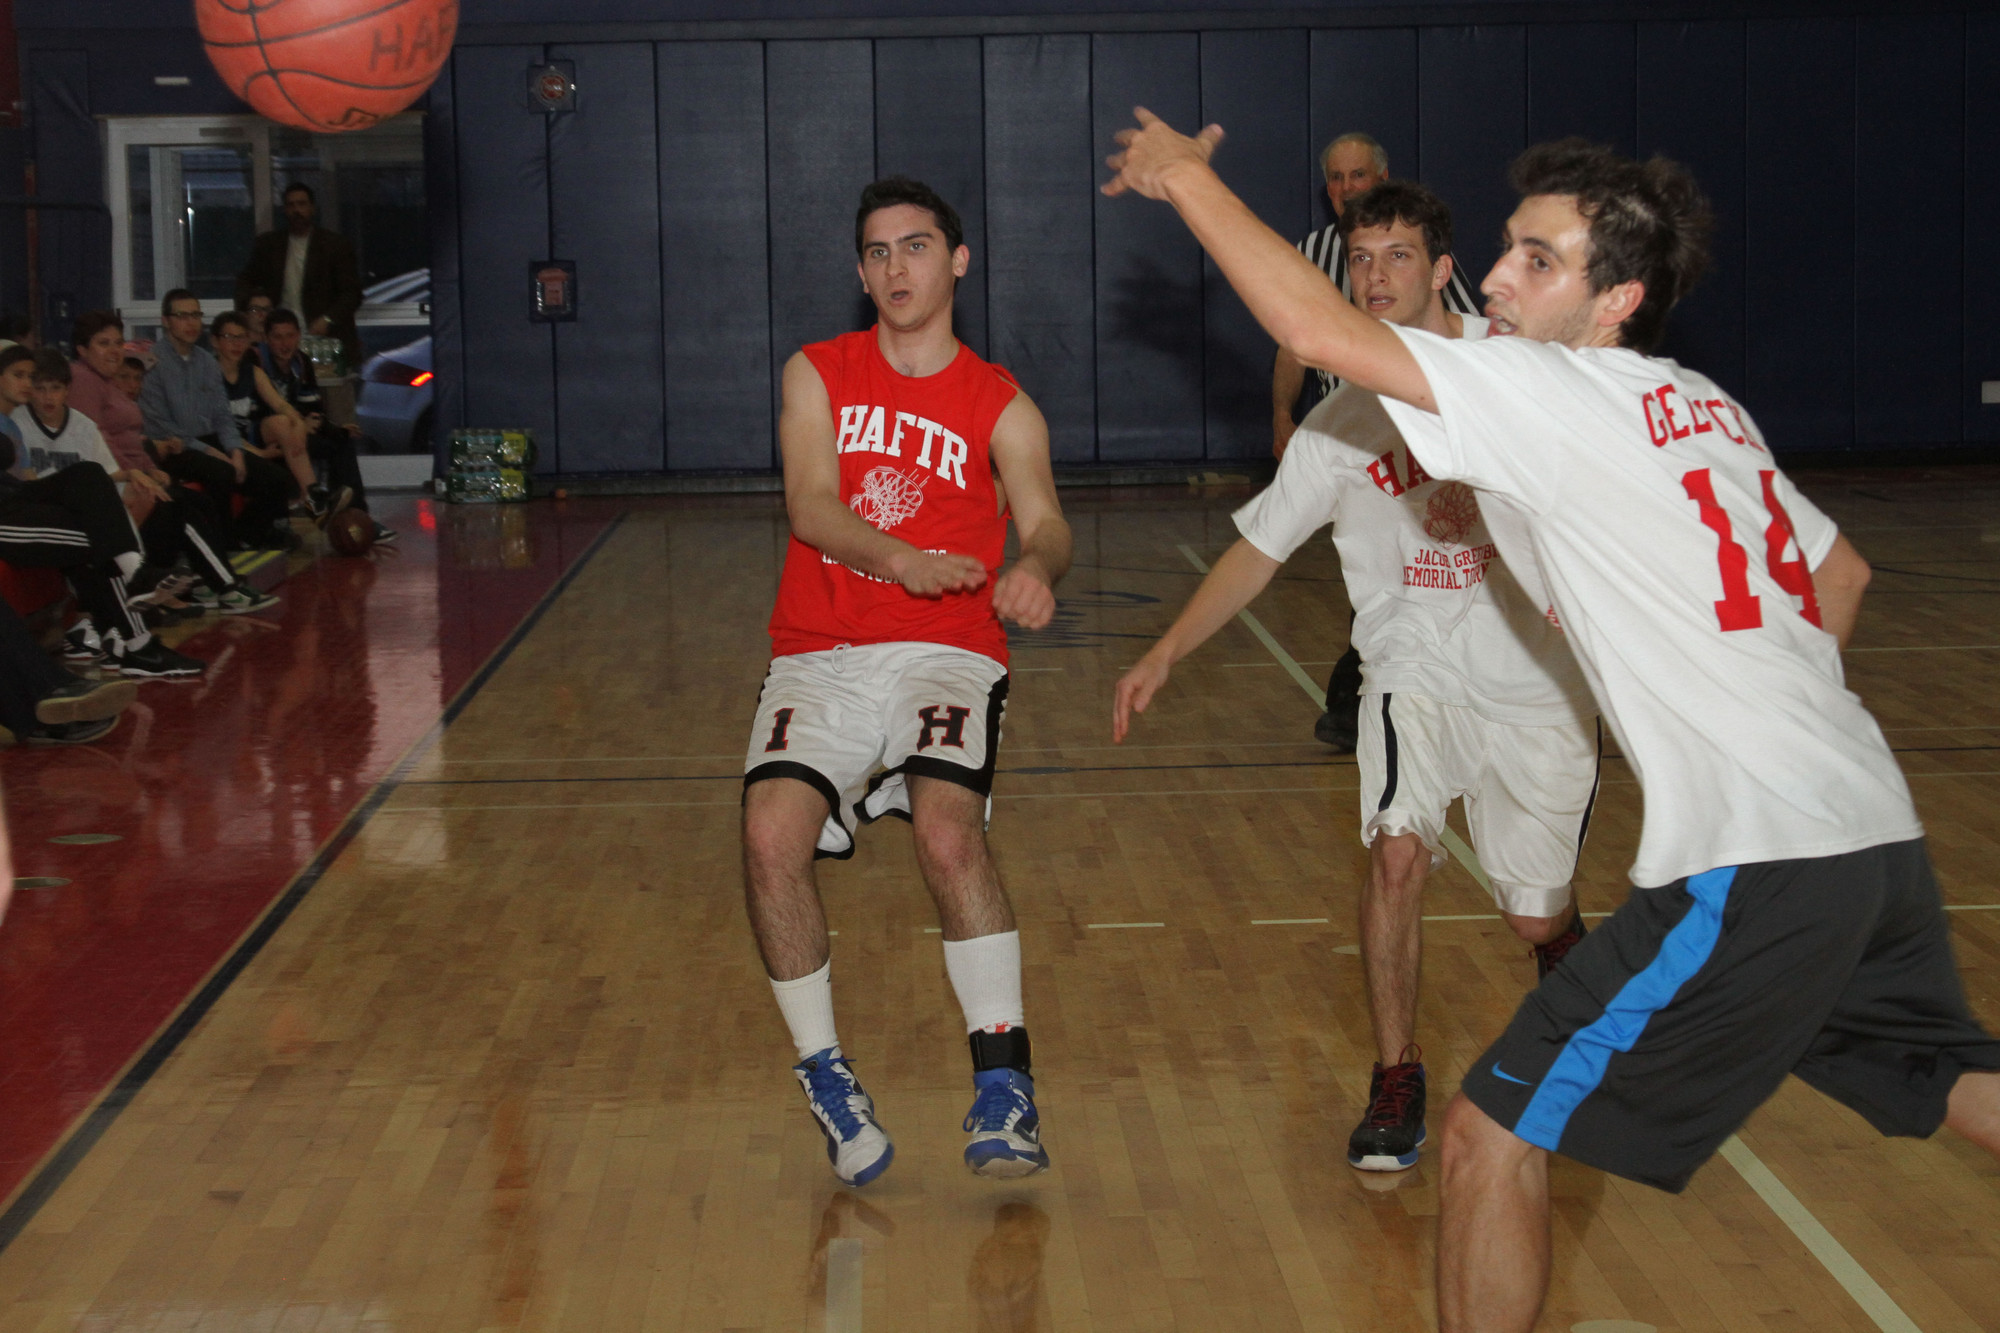 Jacob Haden Greenberg's memory was celebrated by the spirited play demonstrated by the alumni basketball players.